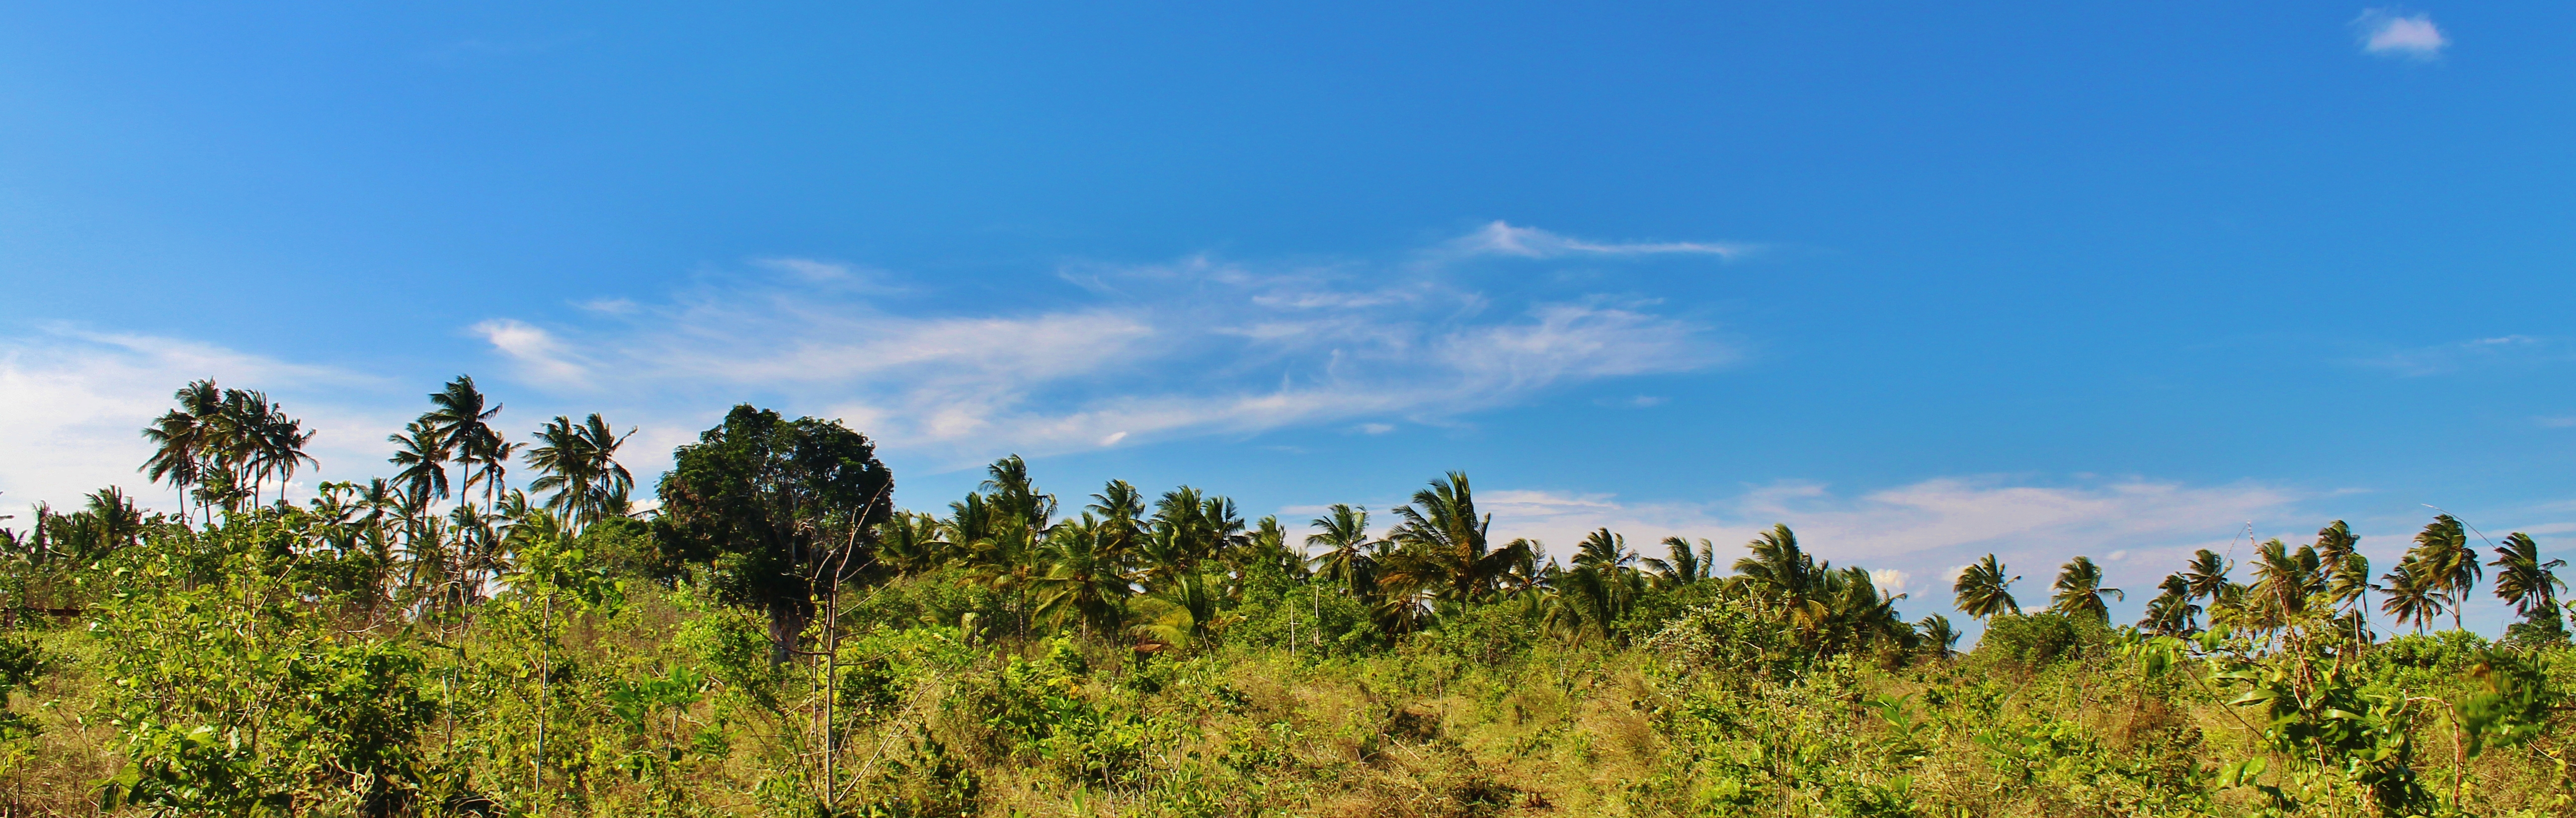 A forest of palm trees in Mkuranga, about an hour south of Dar es Salaam